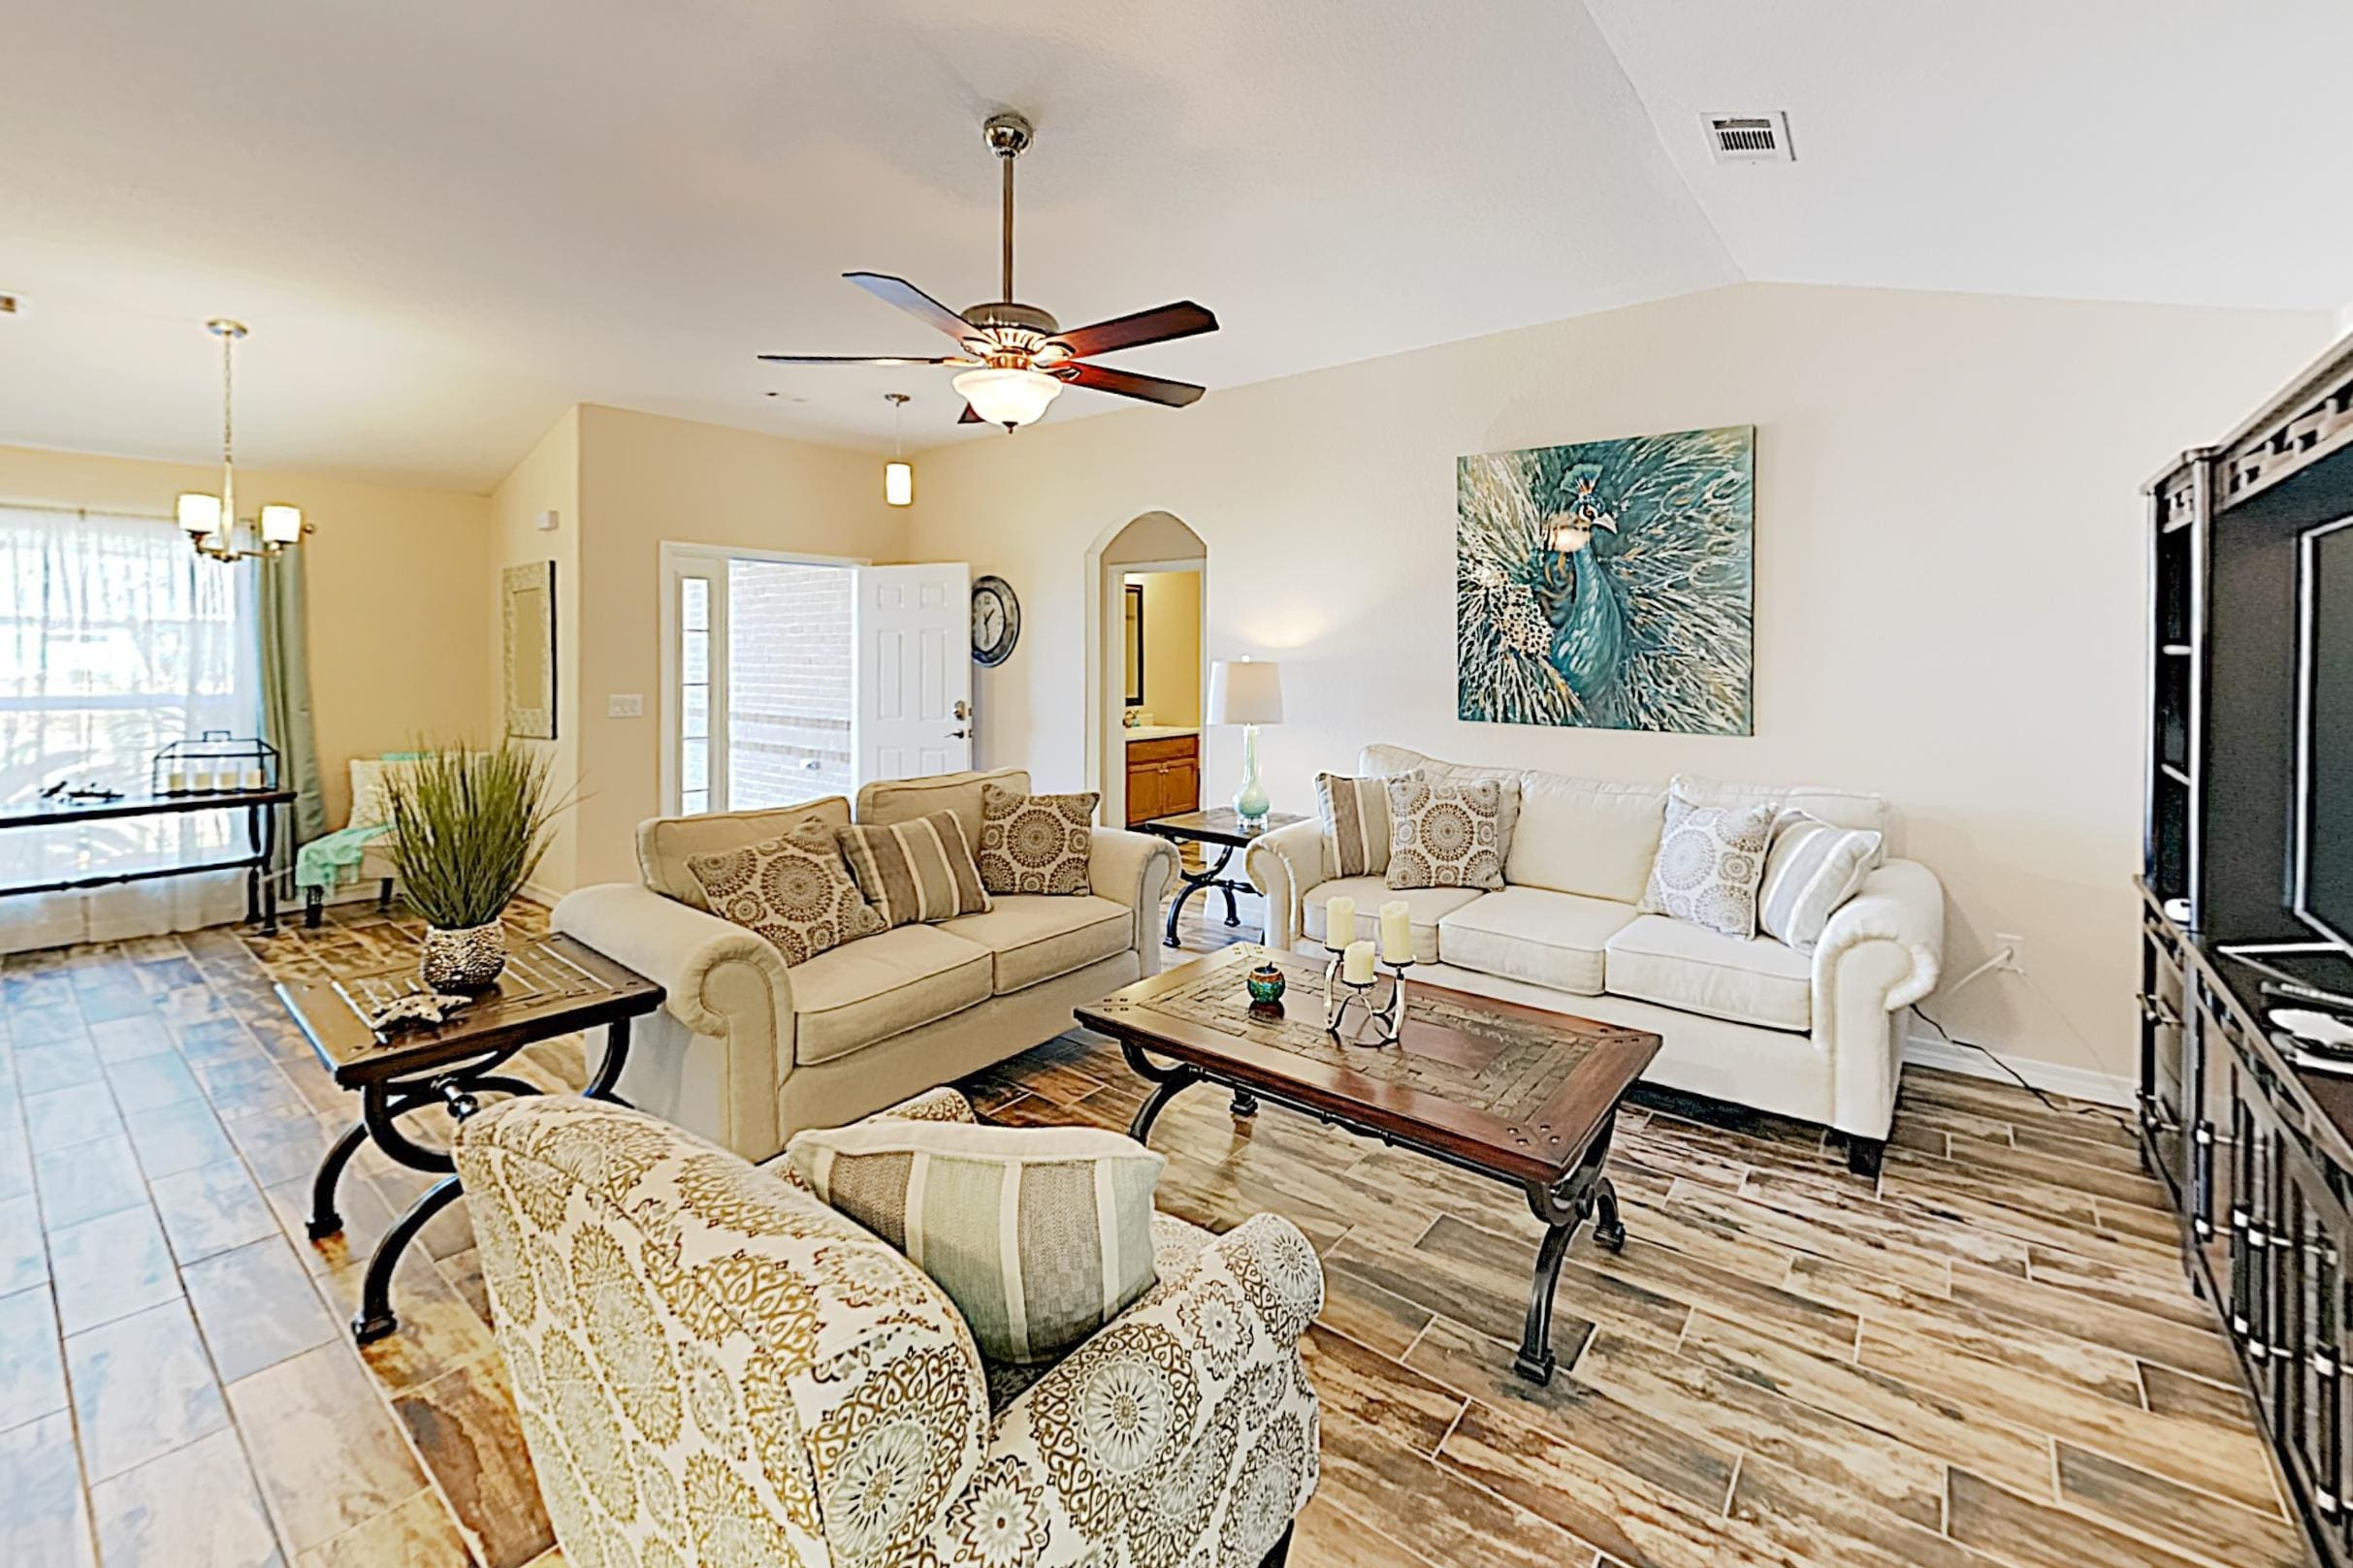 Welcome to Navarre! This home is professionally managed by TurnKey Vacation Rentals.